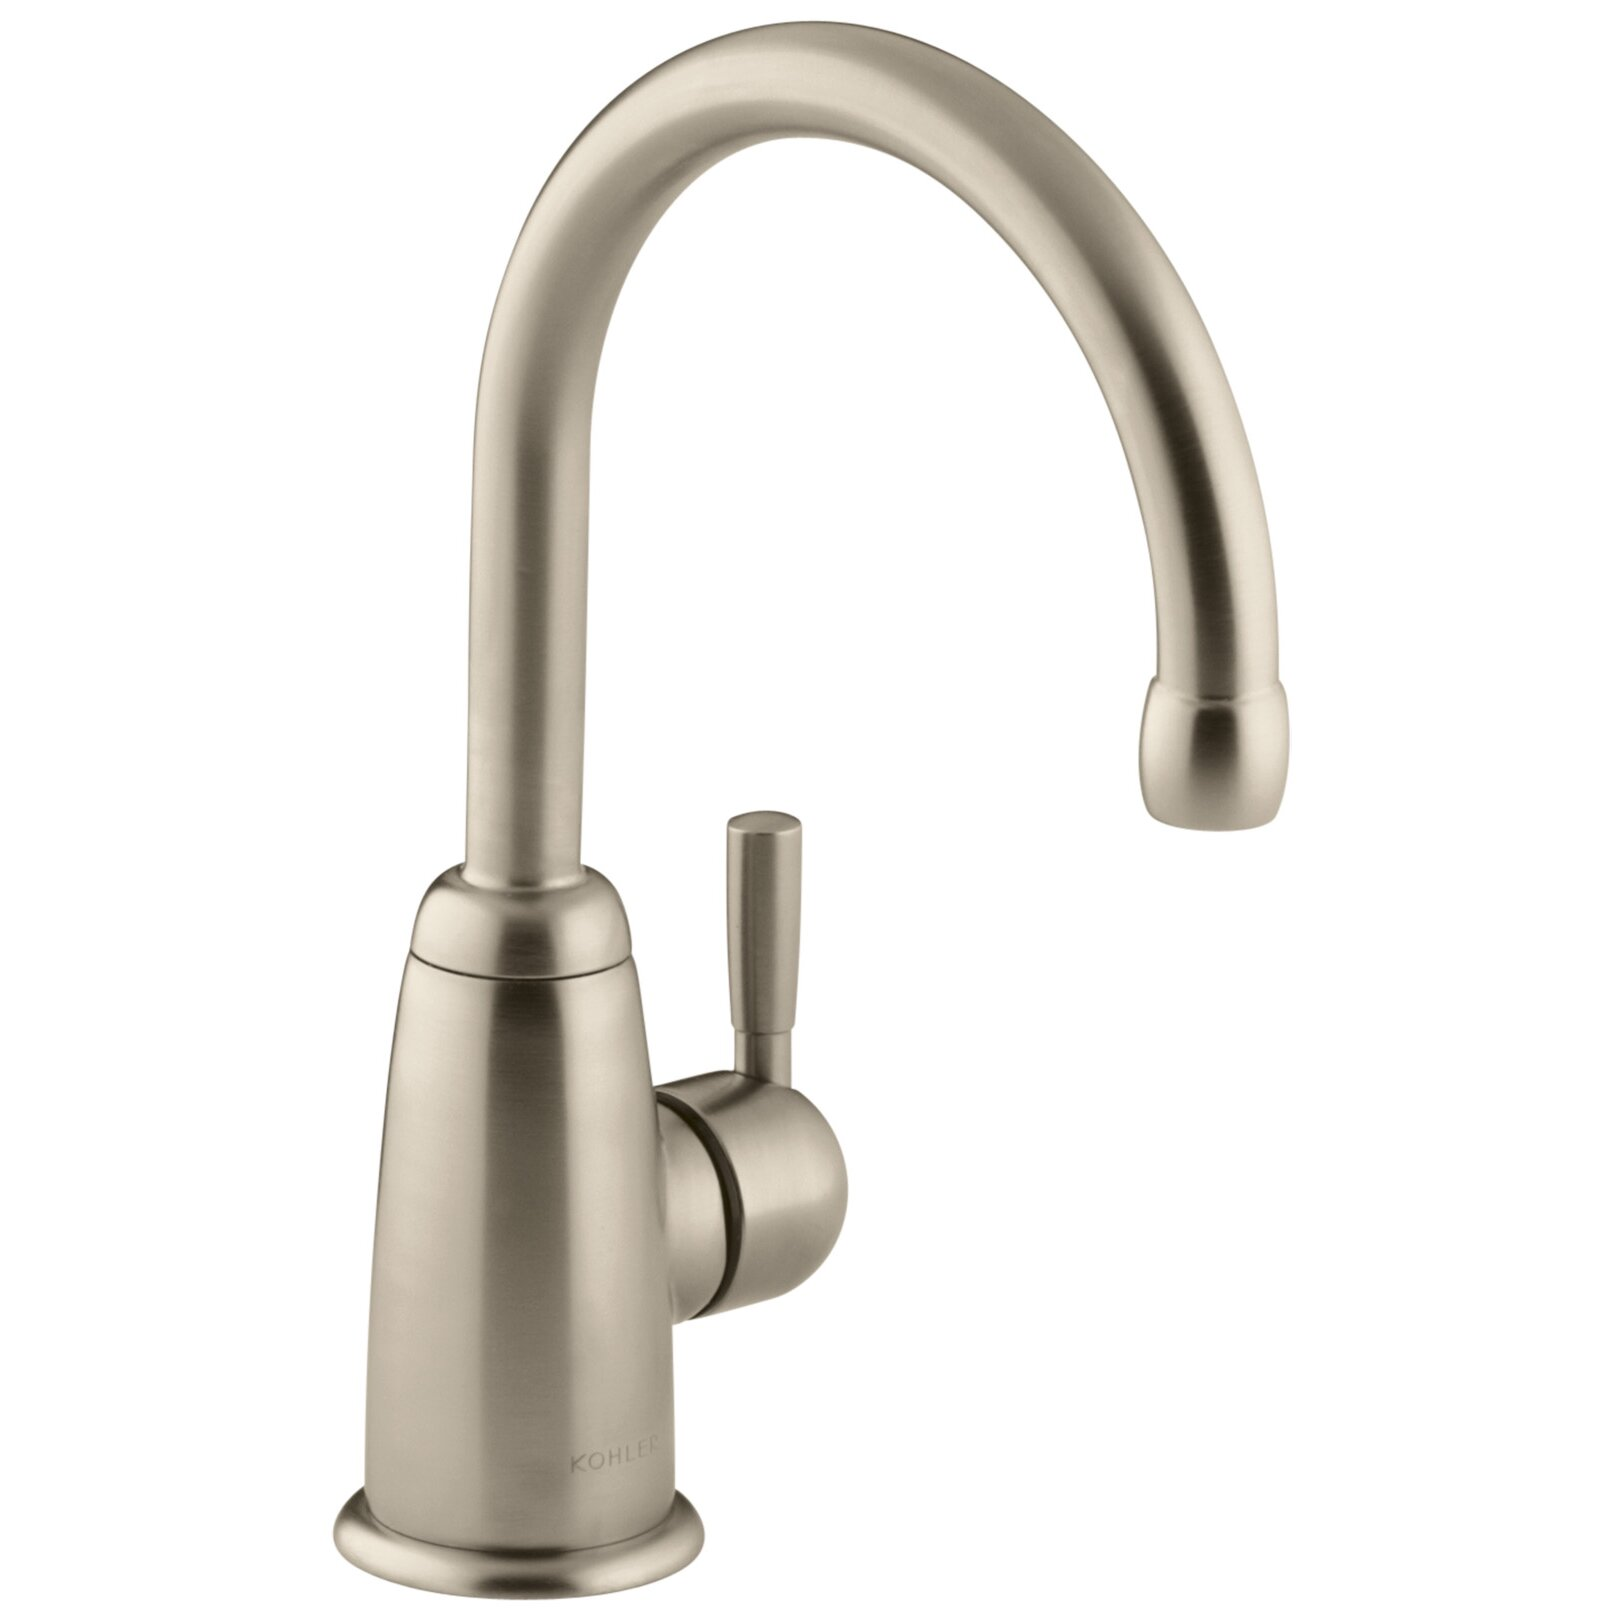 ... Faucet with Contemporary Design Complete with Aquifer Water Filtration